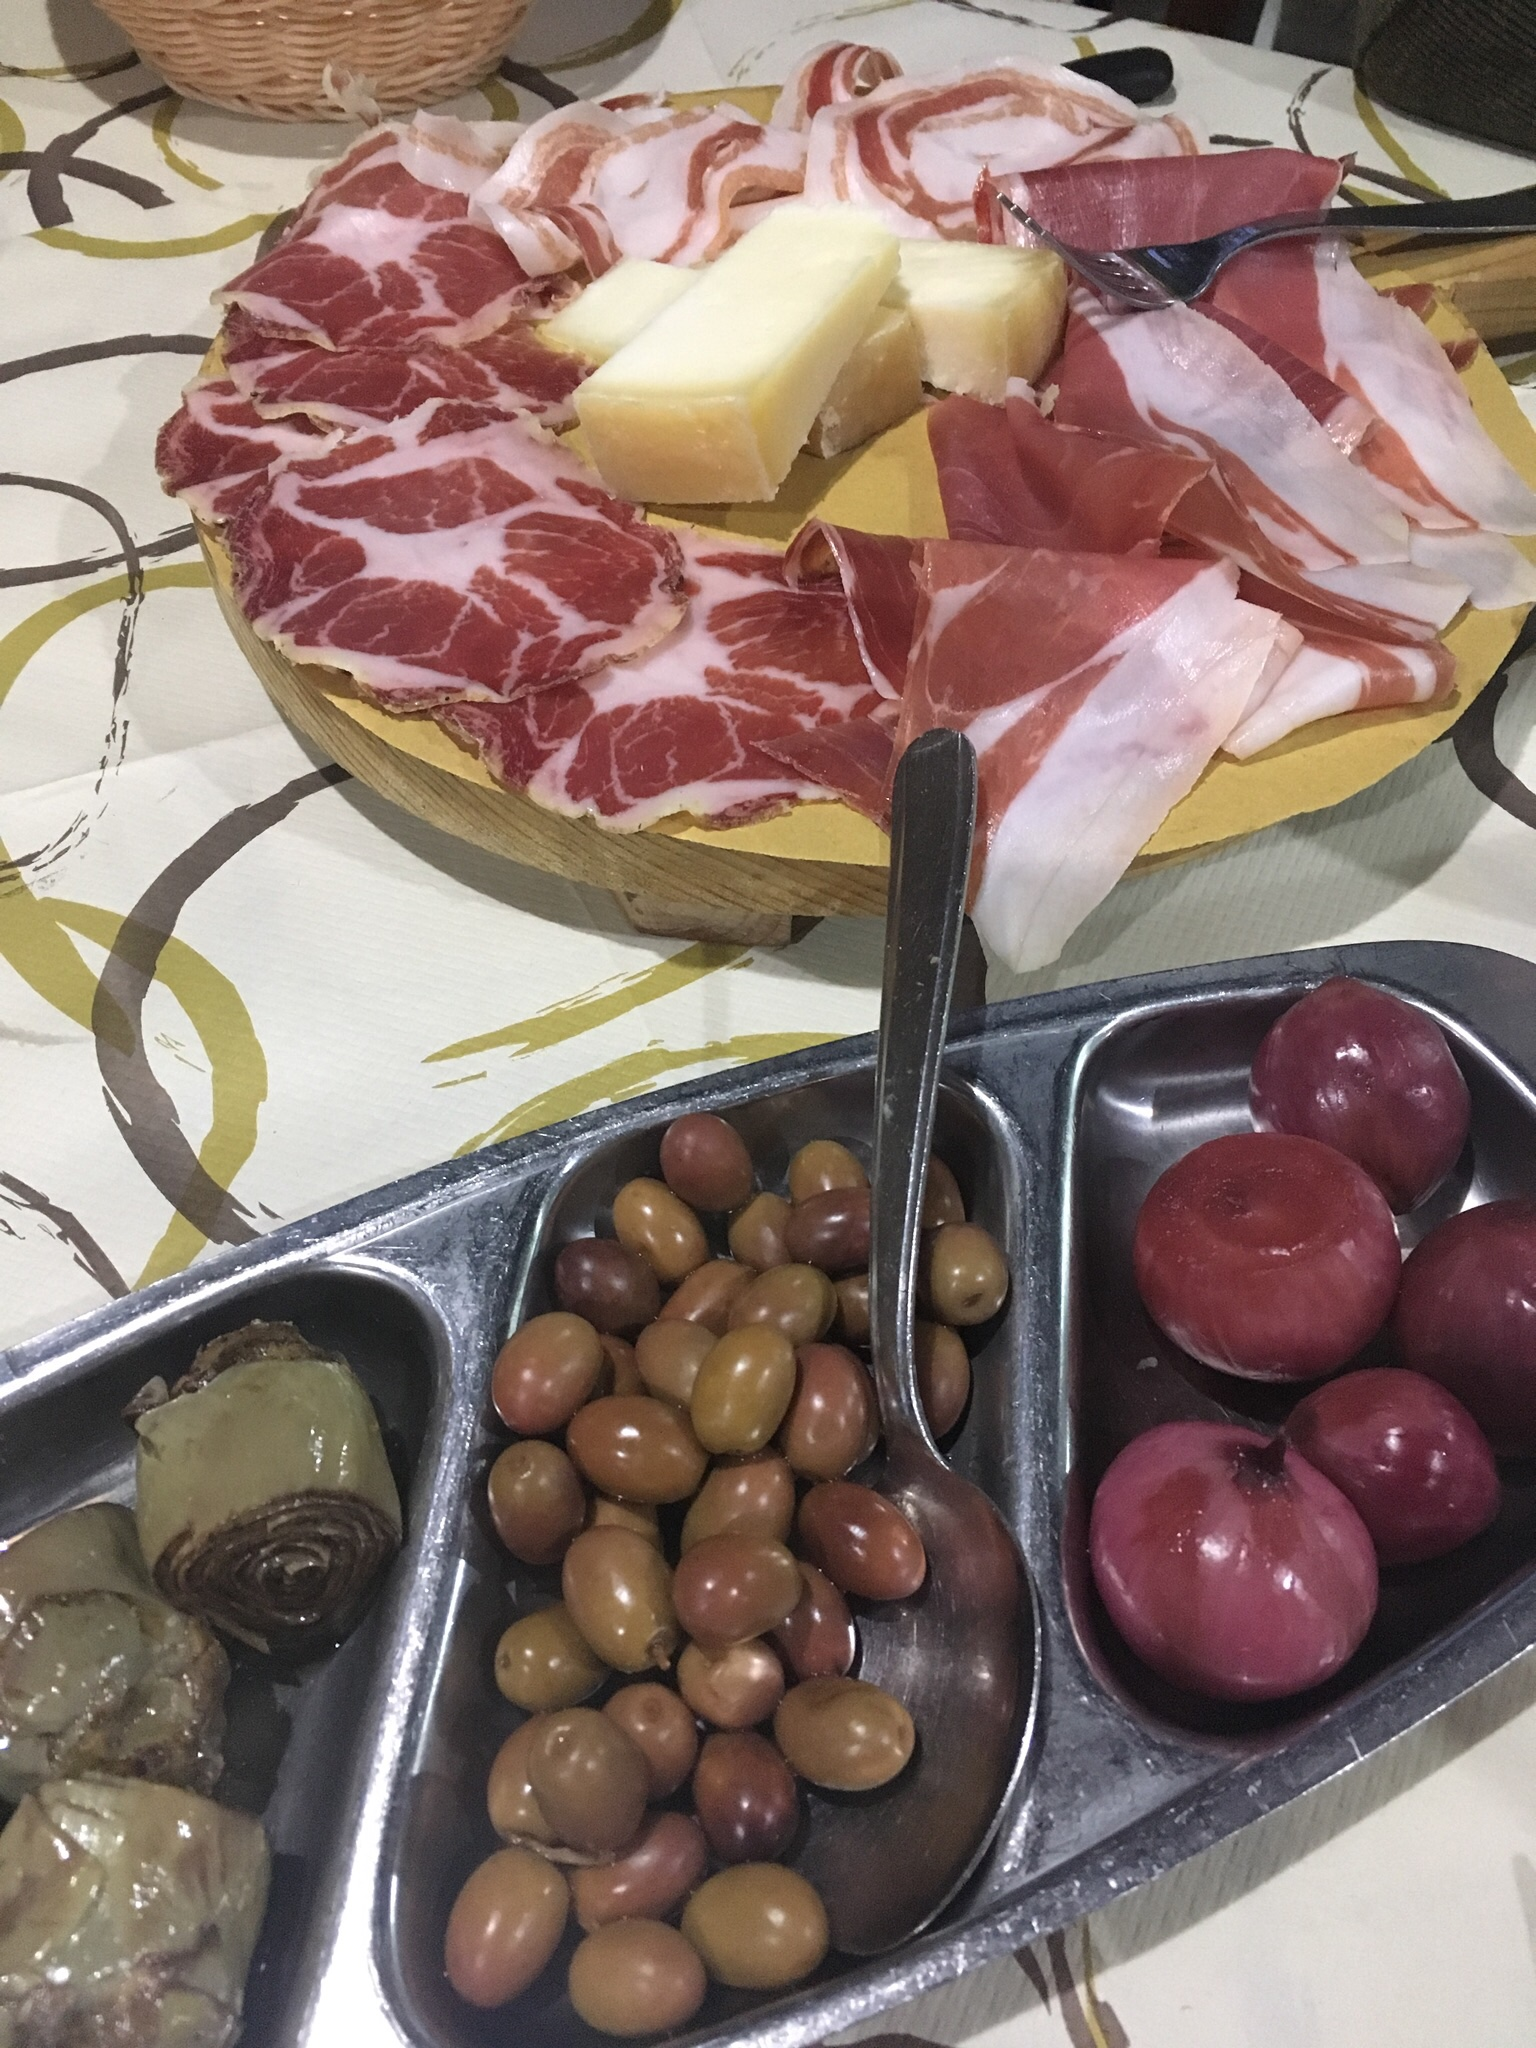 A perfect summer meal - salumi (cold cuts), cheese, and marinated veggies